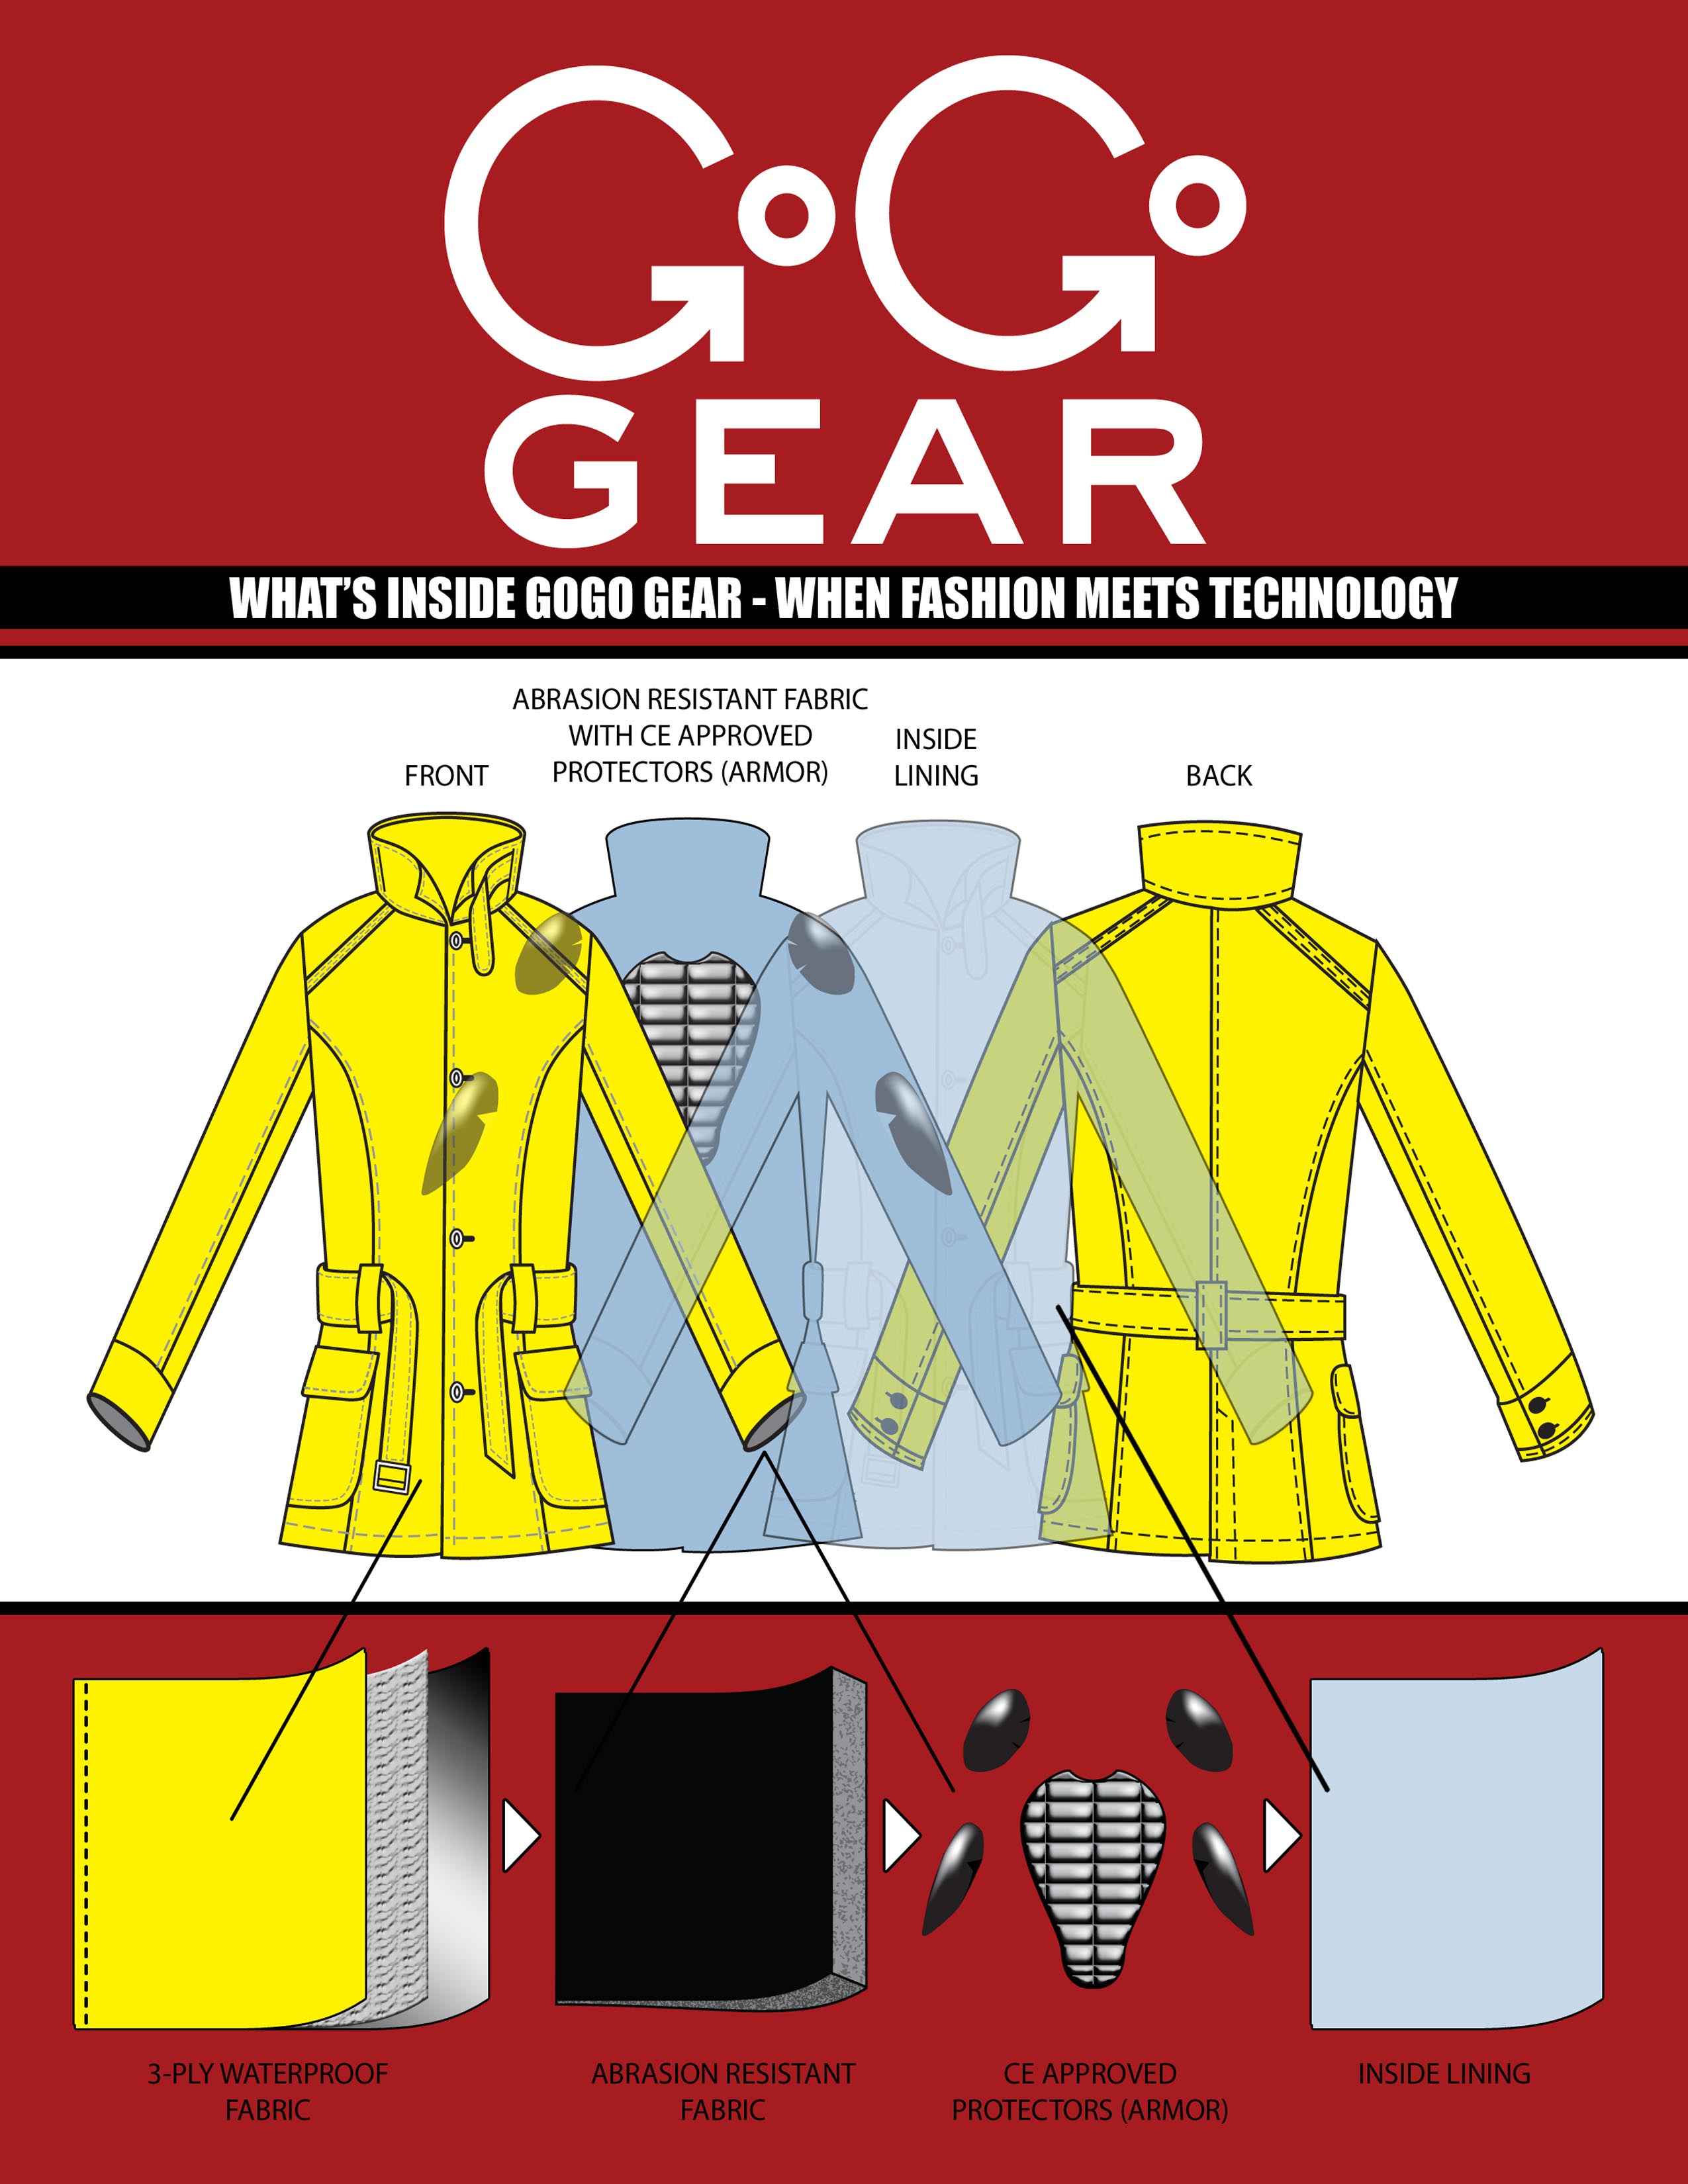 gogo-gear-exploded-diagram-kickstart.jpg